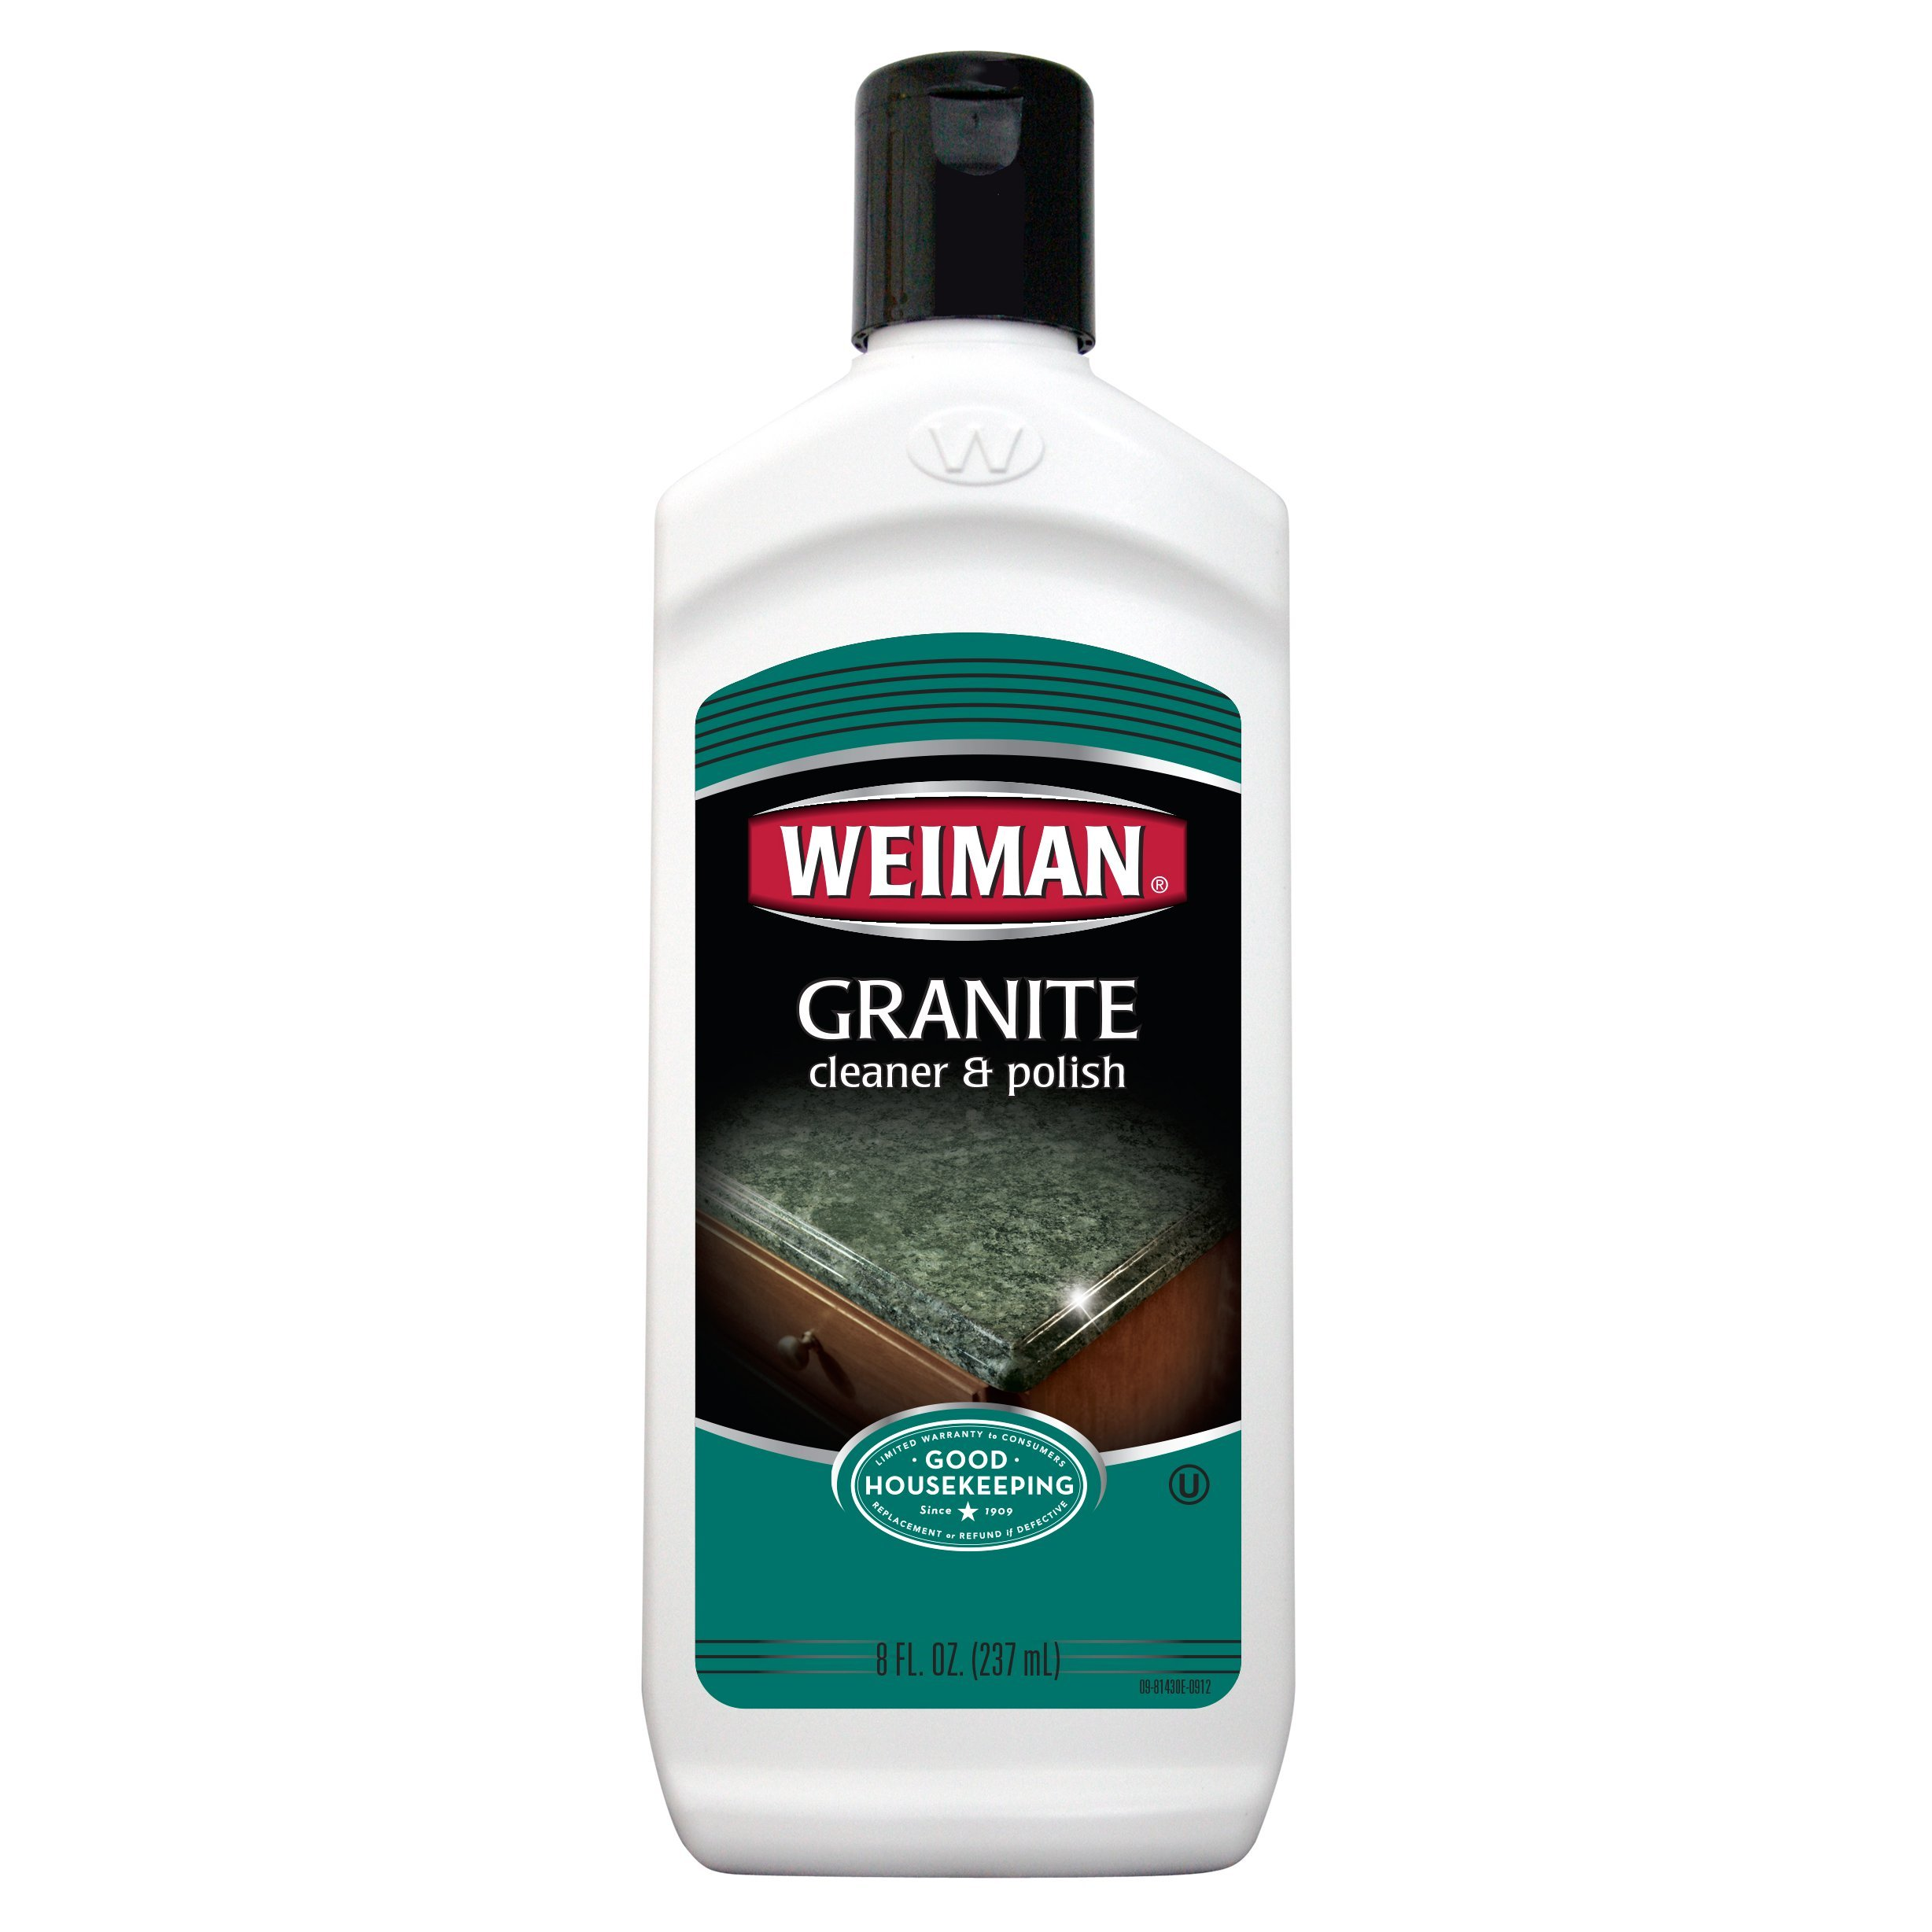 Weiman Granite Cleaner and Polish - 8 Ounce 6 Pack - For Granite Marble Soapstone Quartz Quartzite Slate Limestone Corian Laminate Tile Countertop and More by Weiman